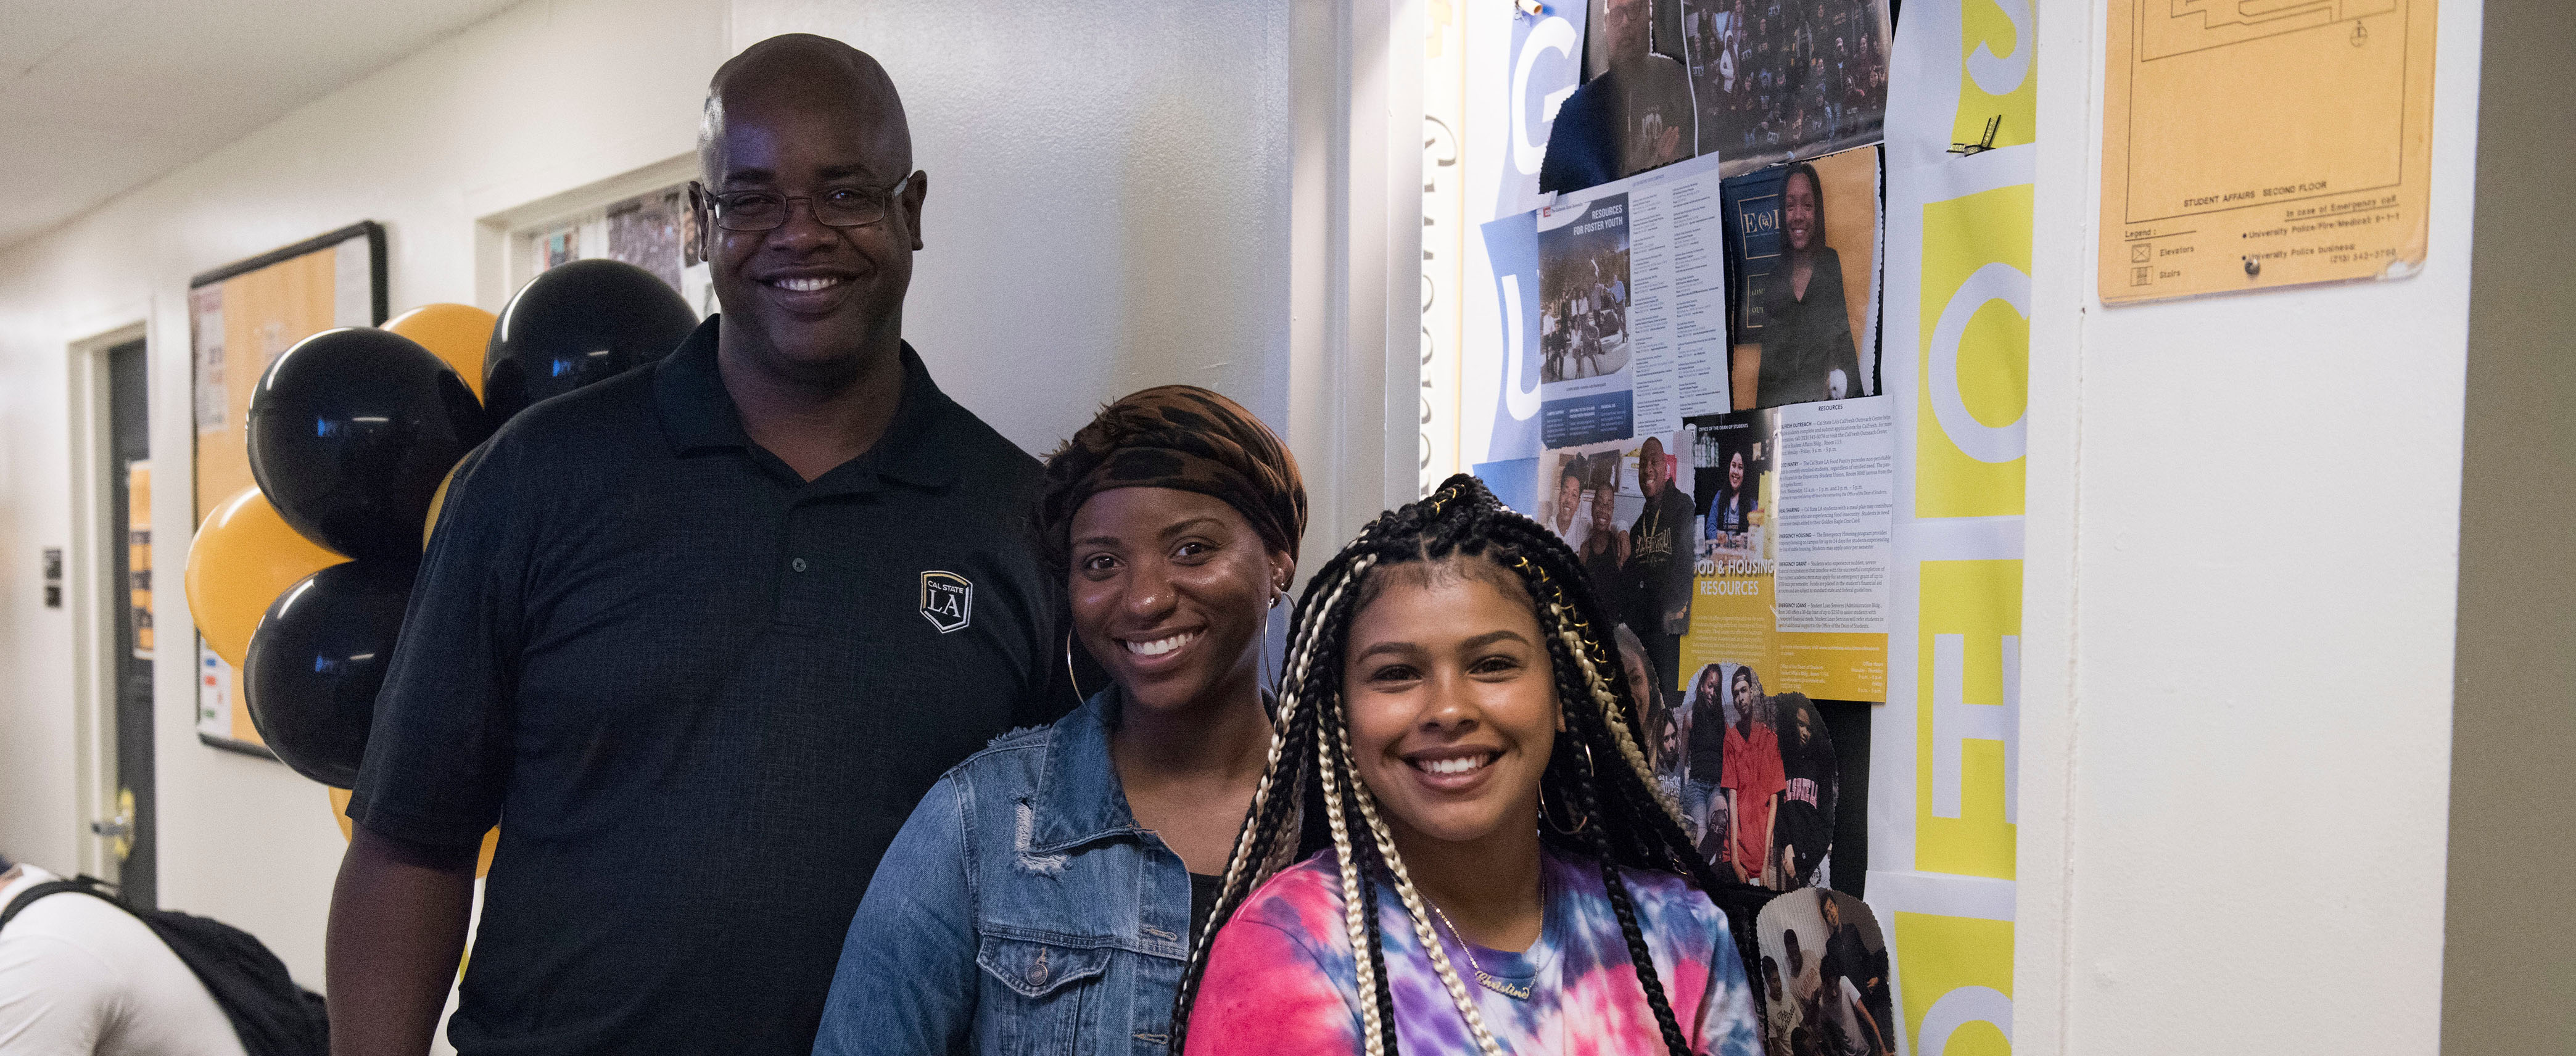 EOP Staff member with students